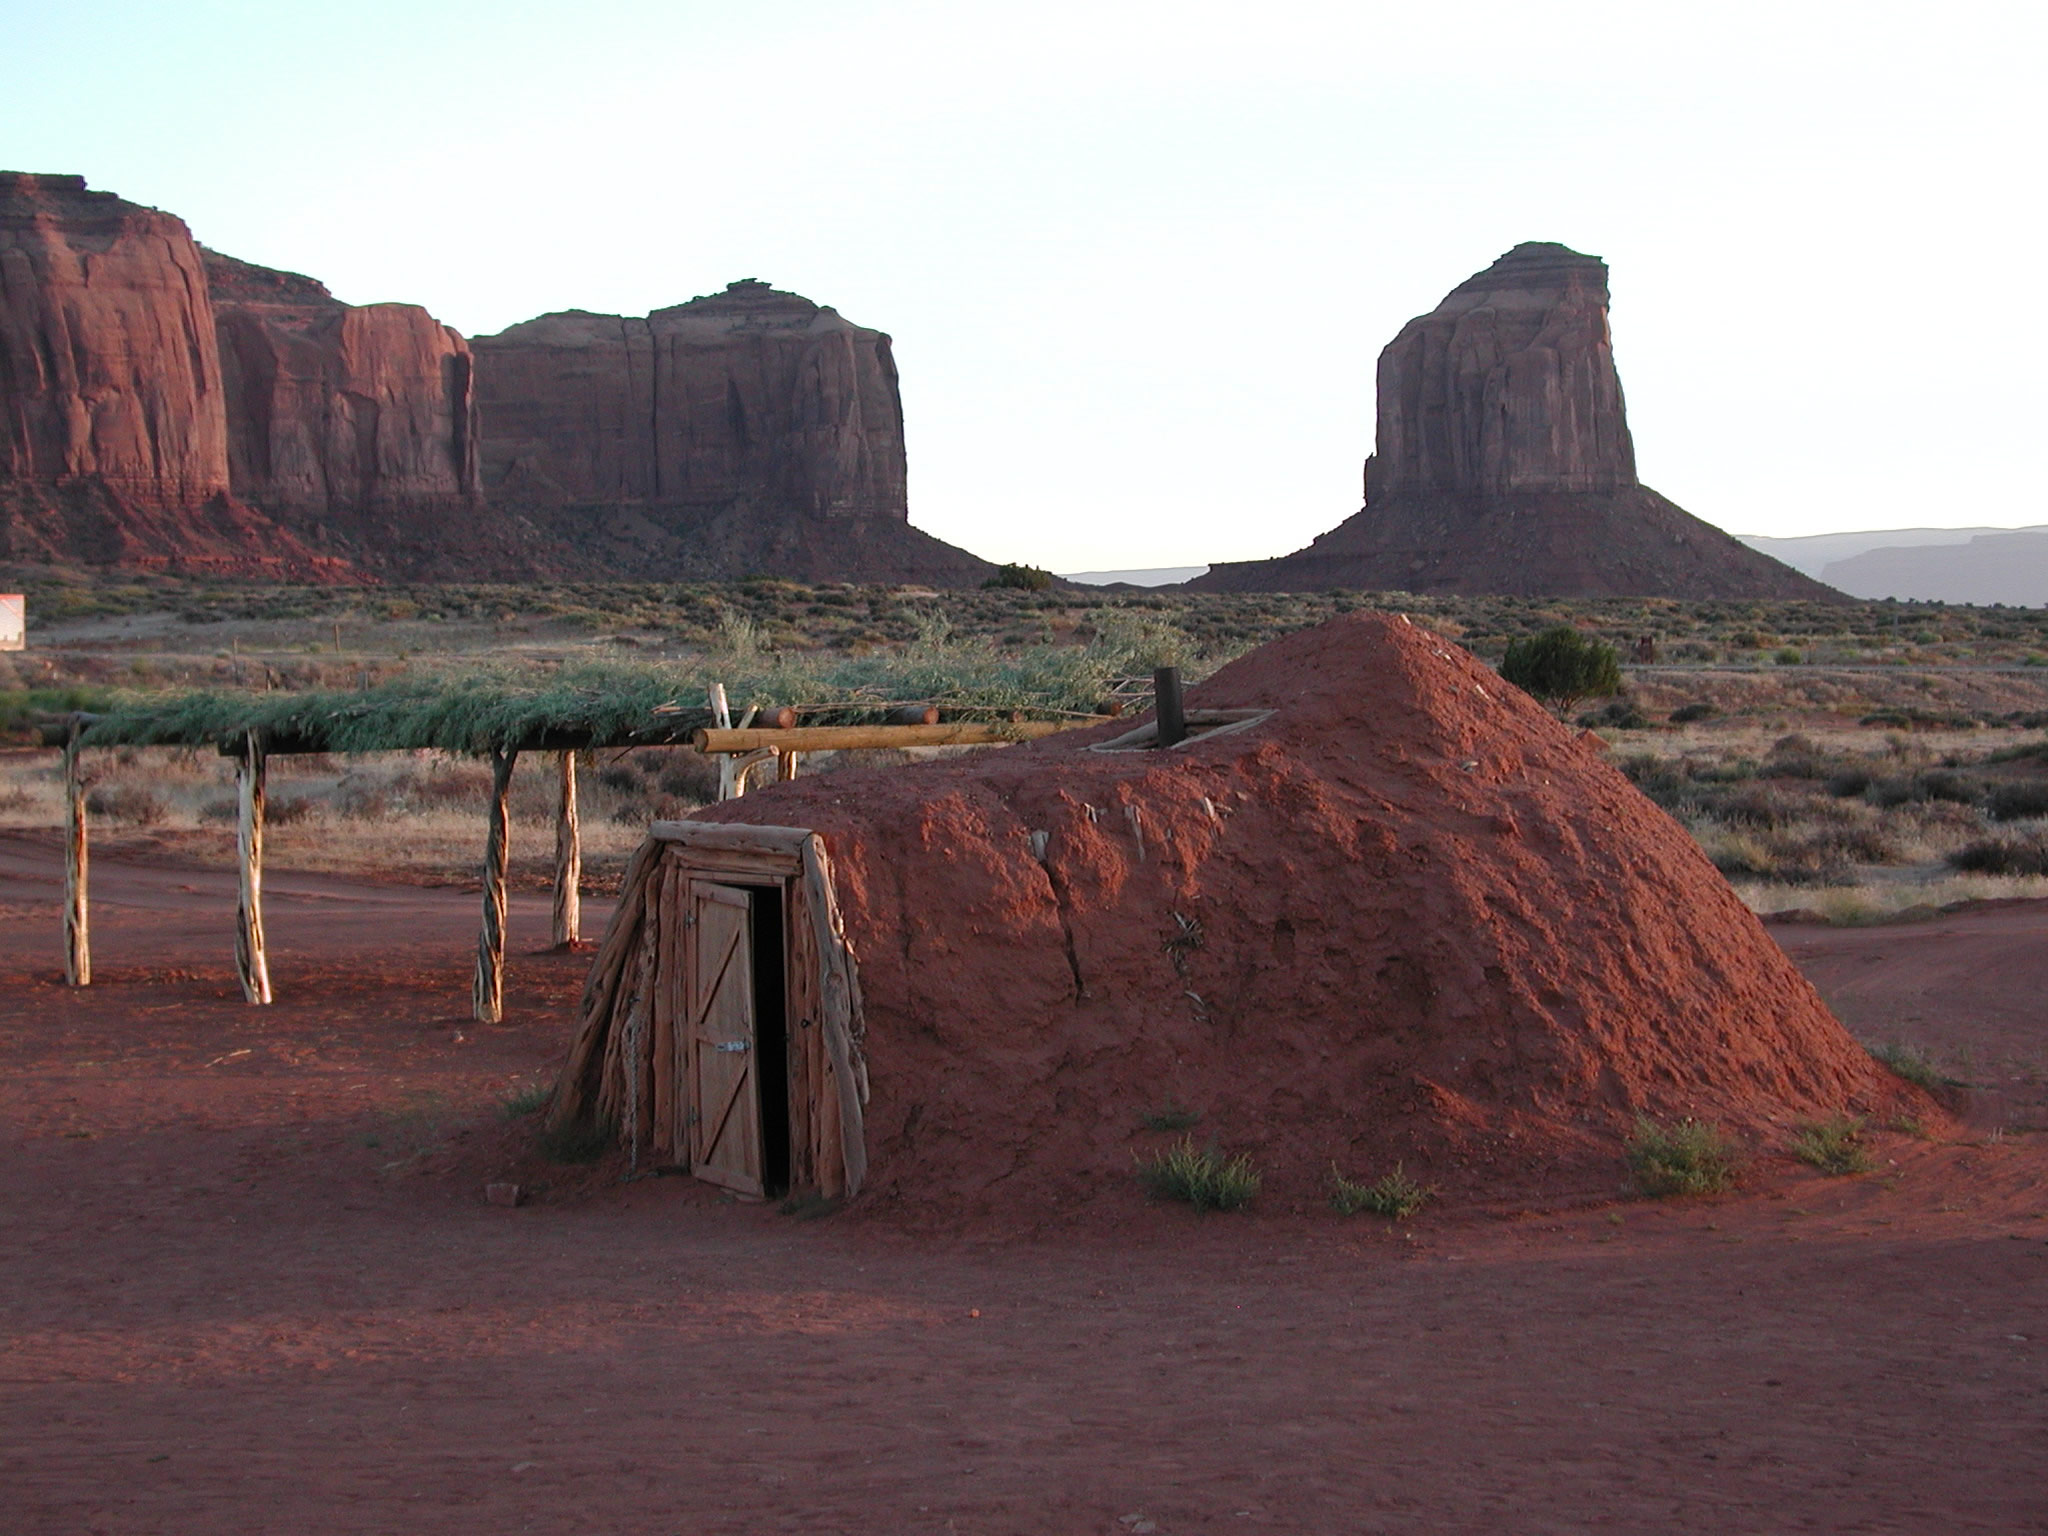 Image 7. A male fork-pole hogan from Monument Valley [Colorado, USA], June 2007. Permission from, Kevin Blake (http://www.k-state.edu/geography/kblake/).